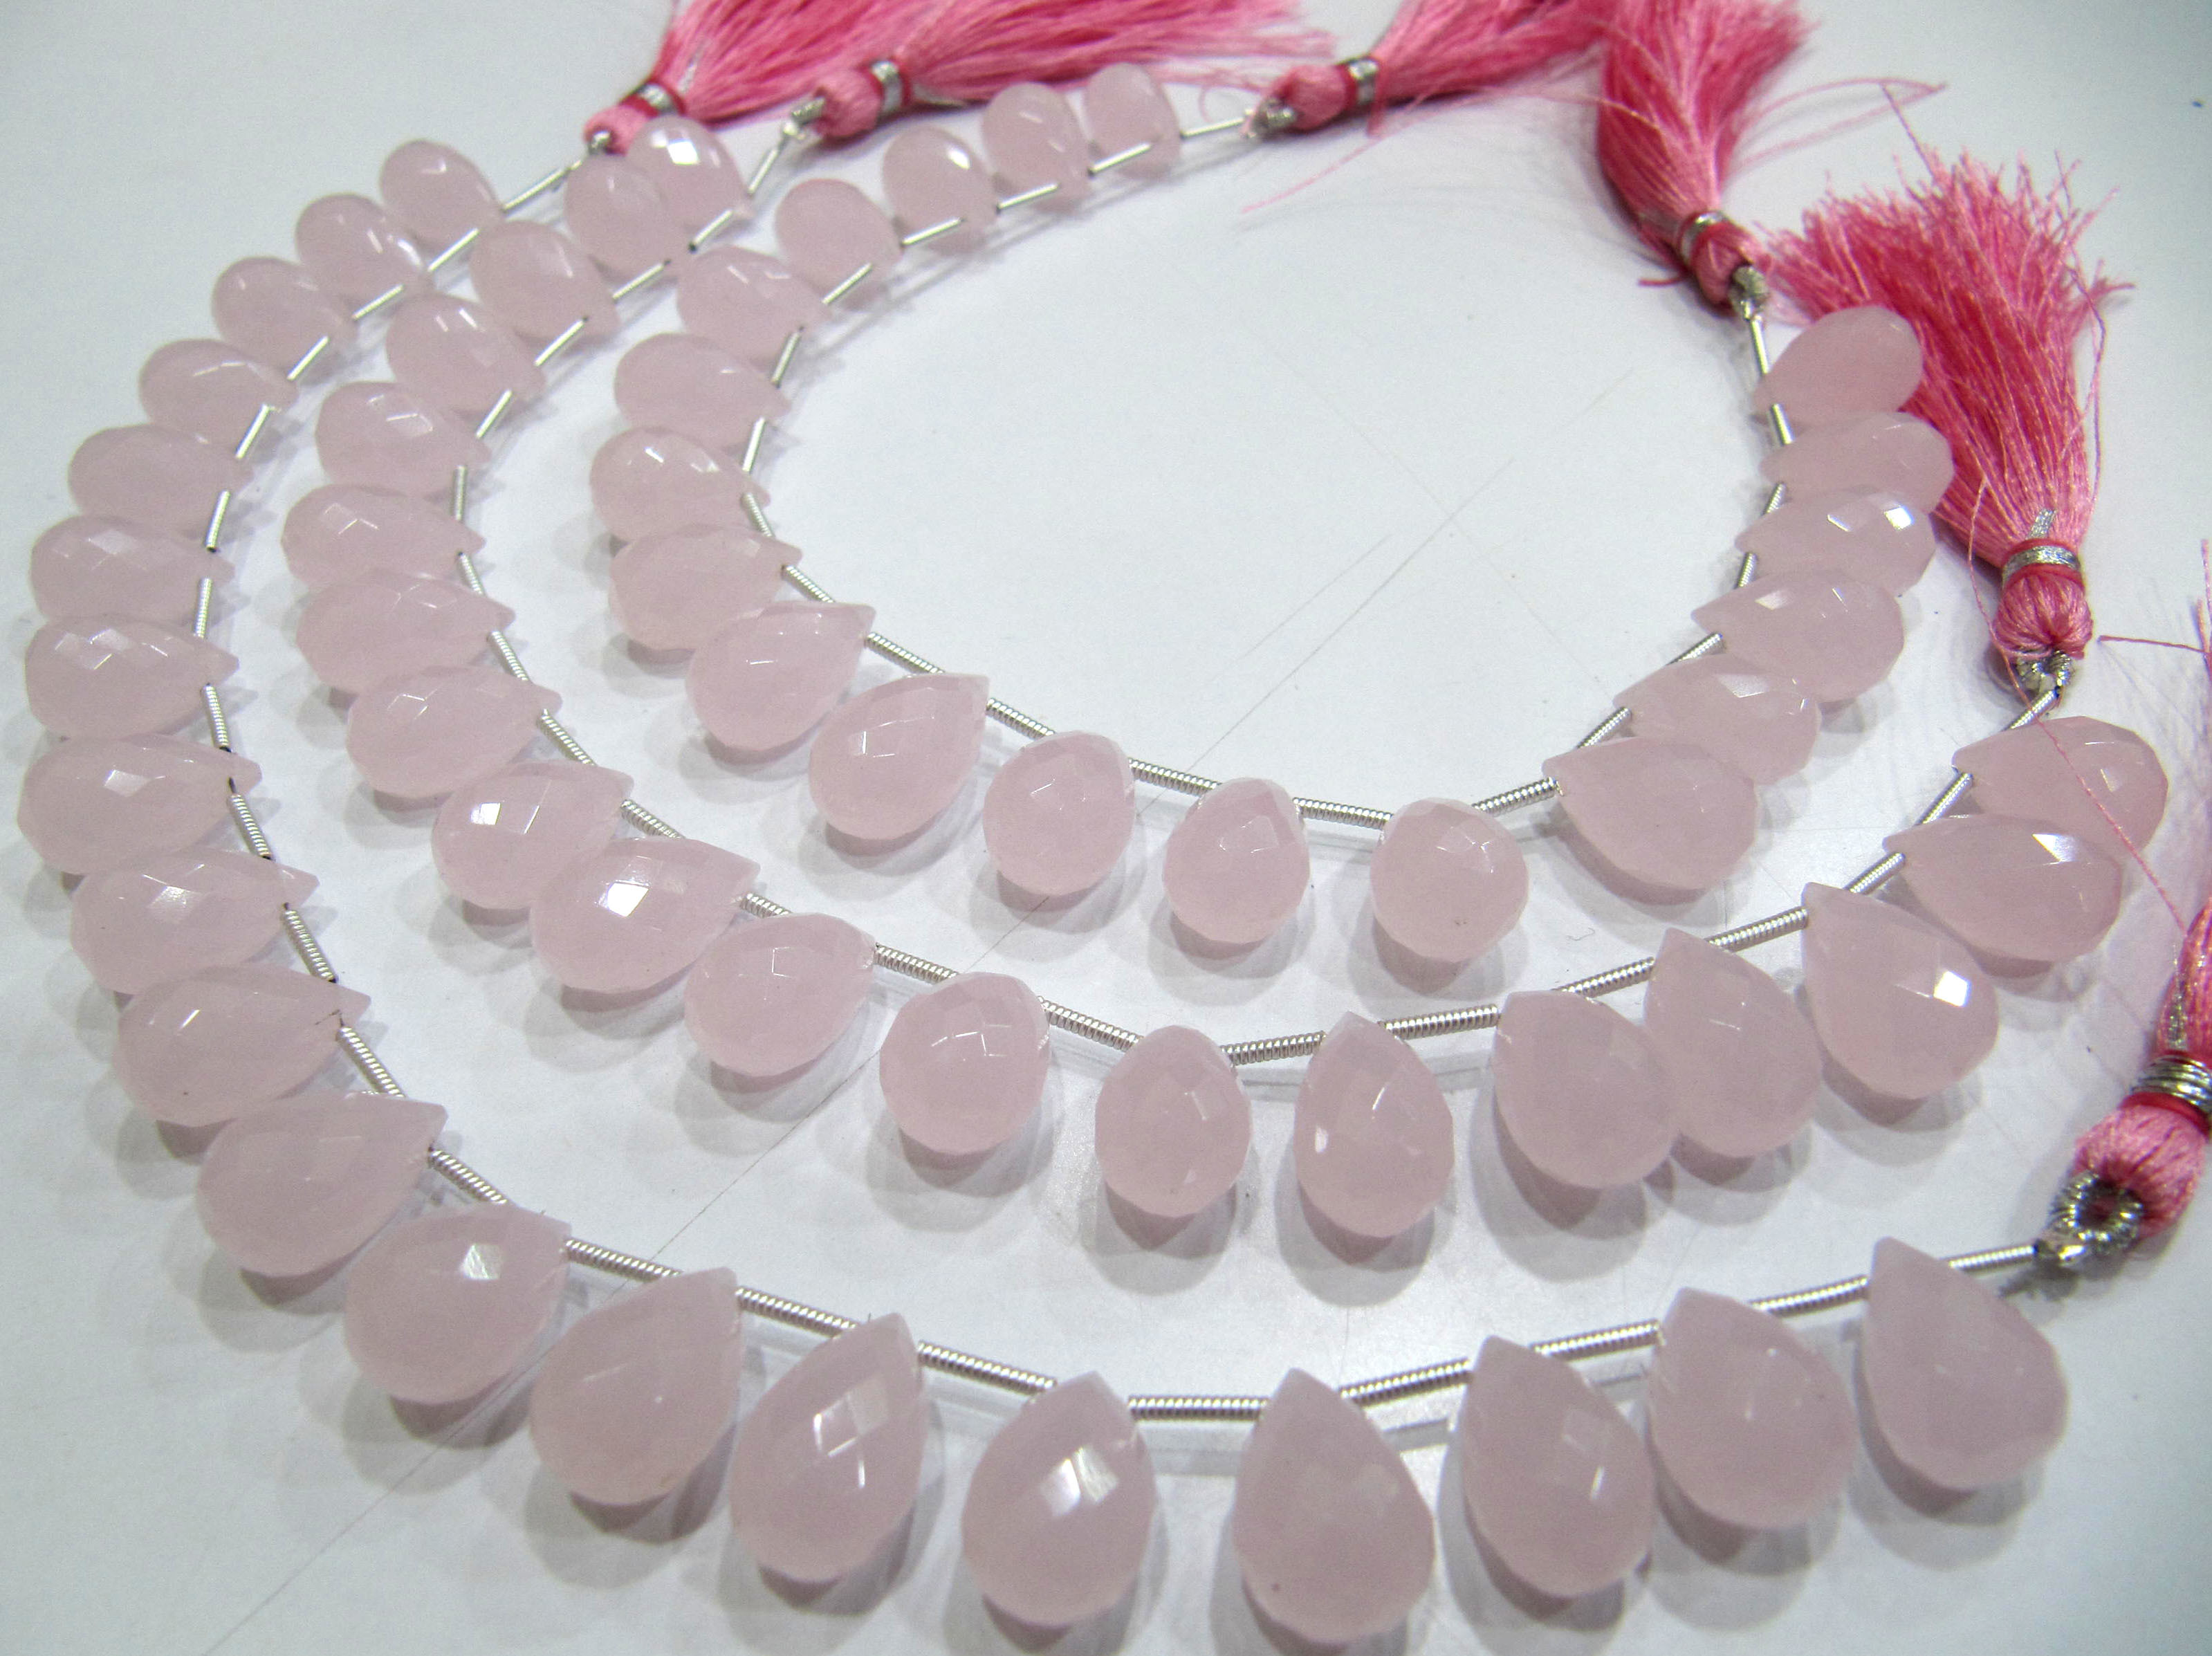 Rose Quartz 10x14mm Tear Drop Shape Hydro Quartz Beads